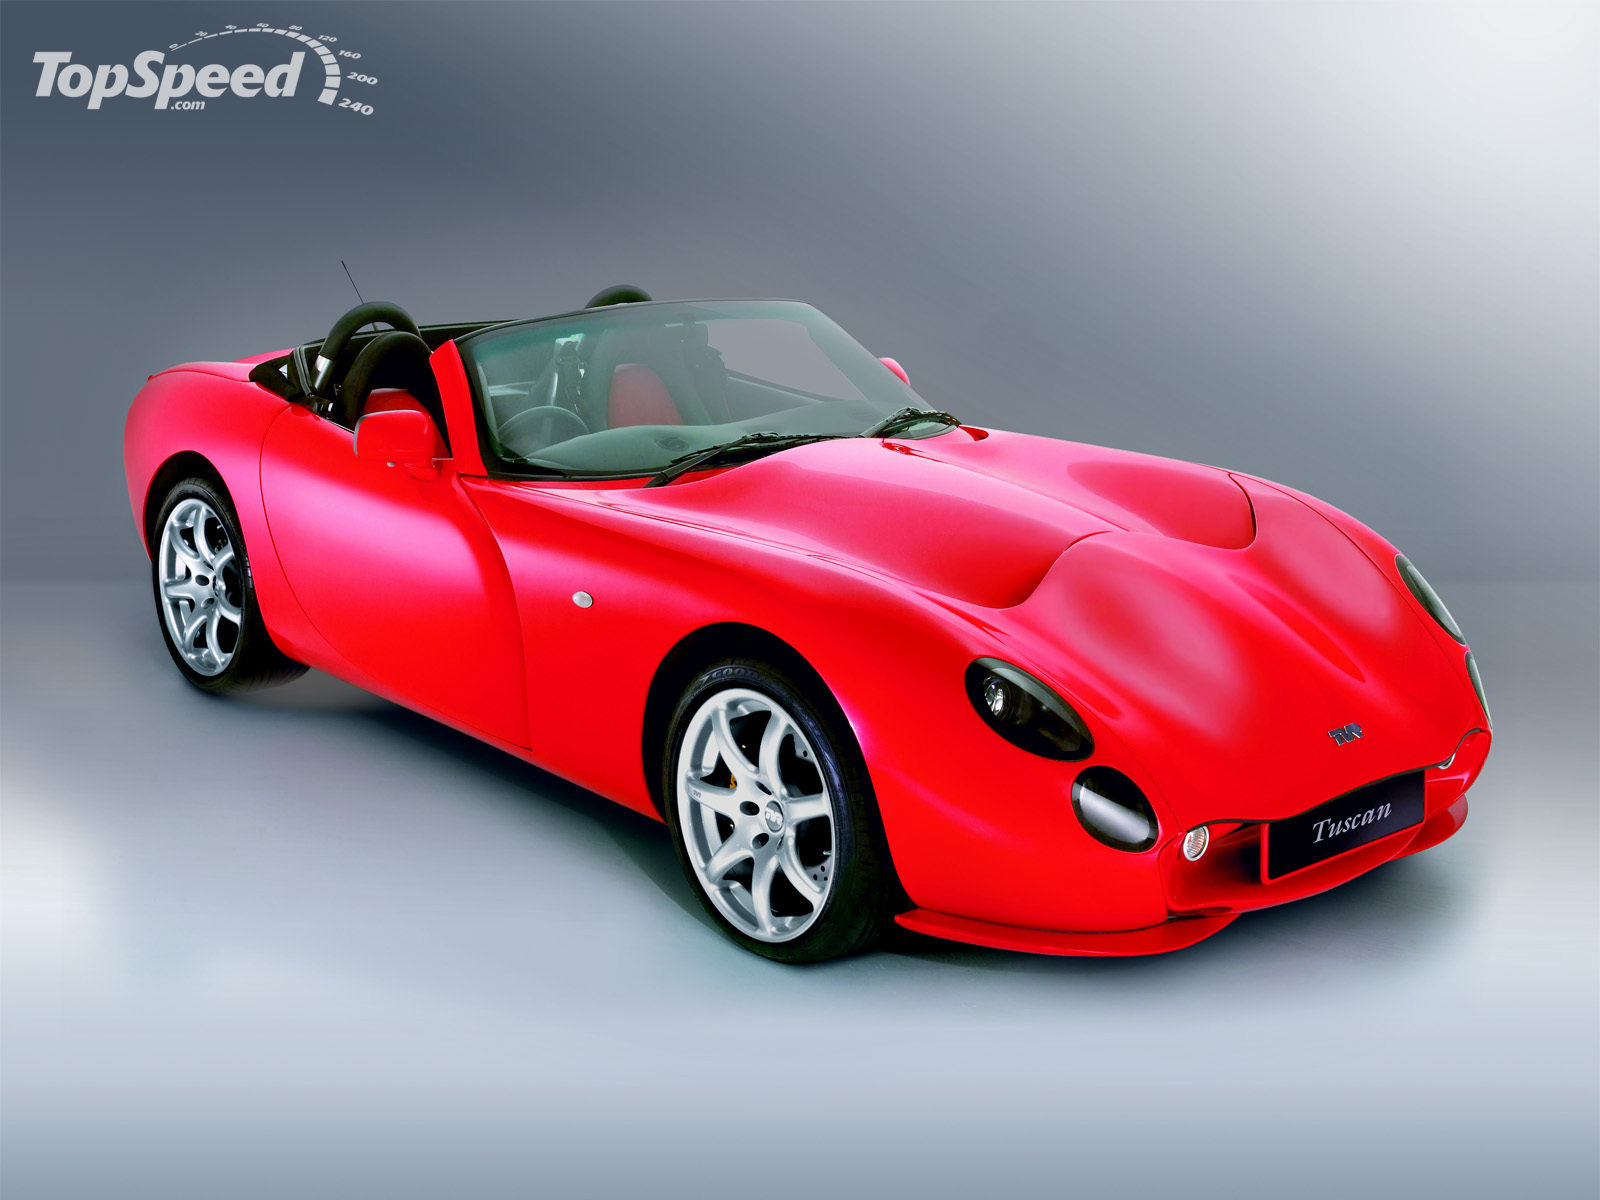 tvr tuscan s #6